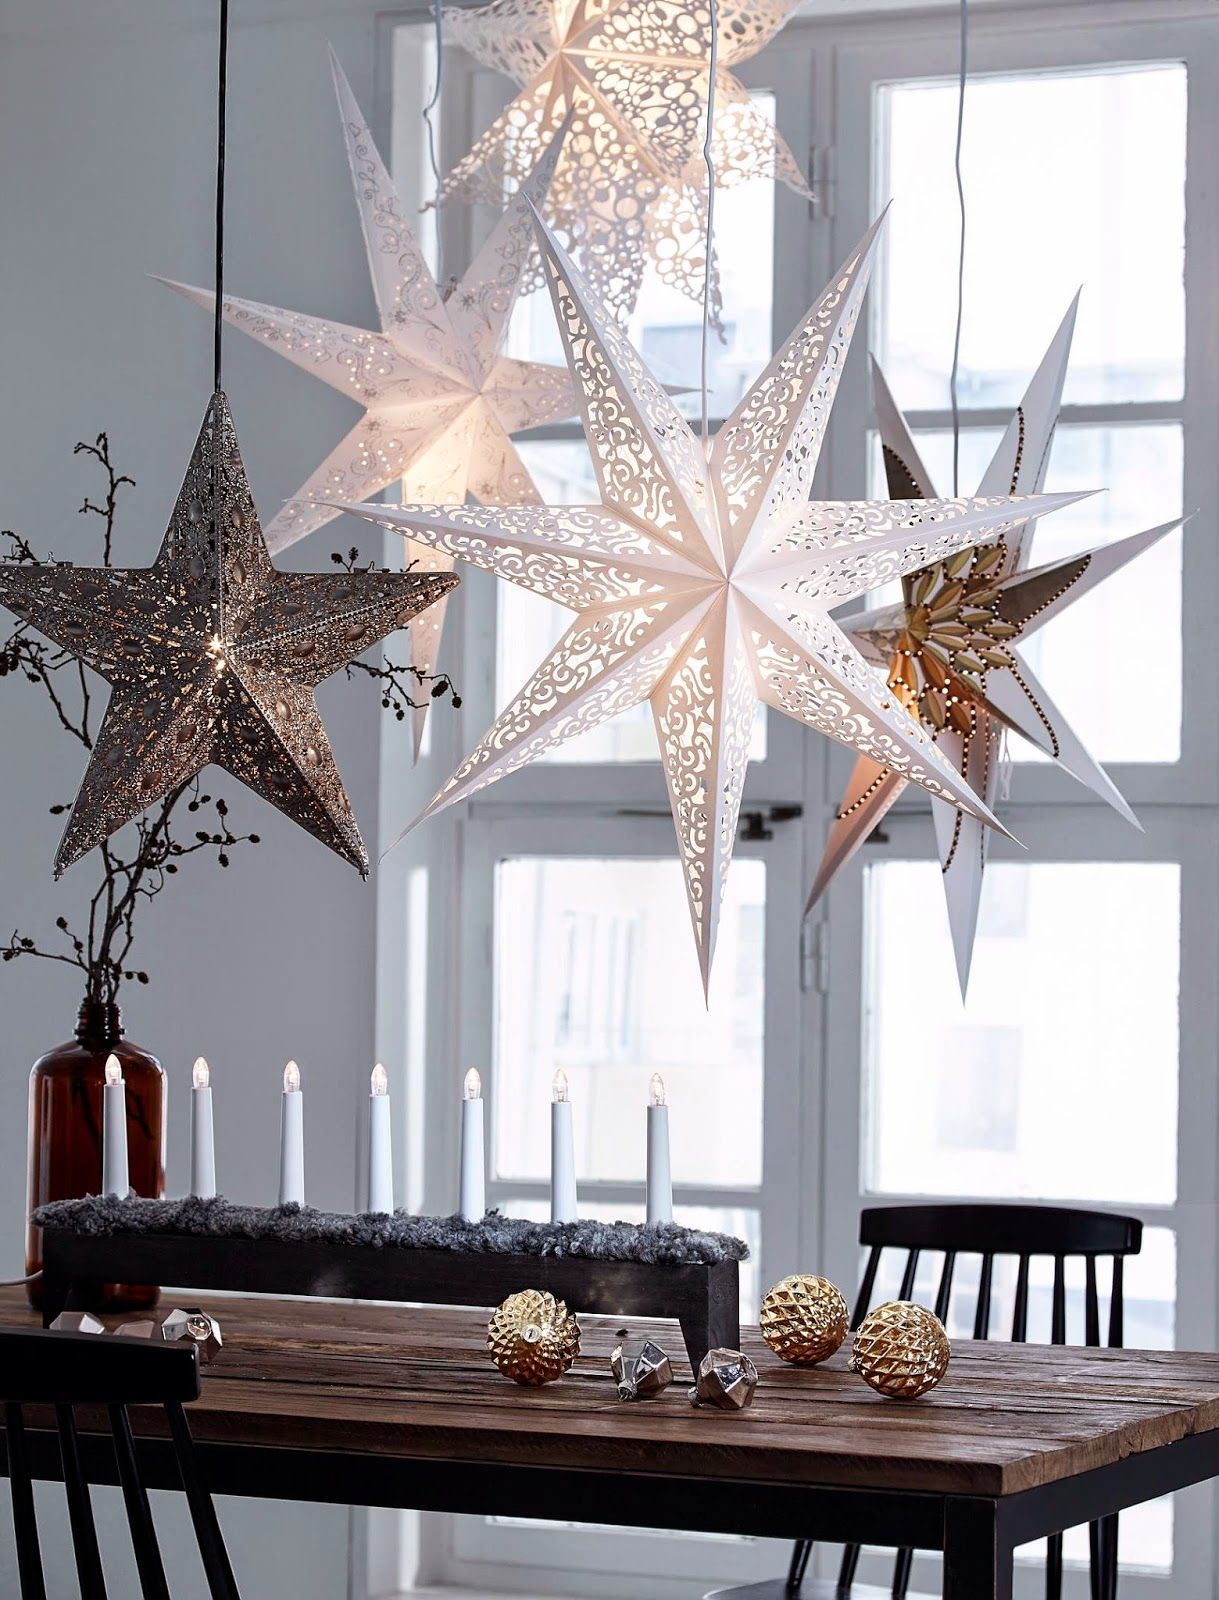 Idea for our gold stars hang them from the light fixture over the